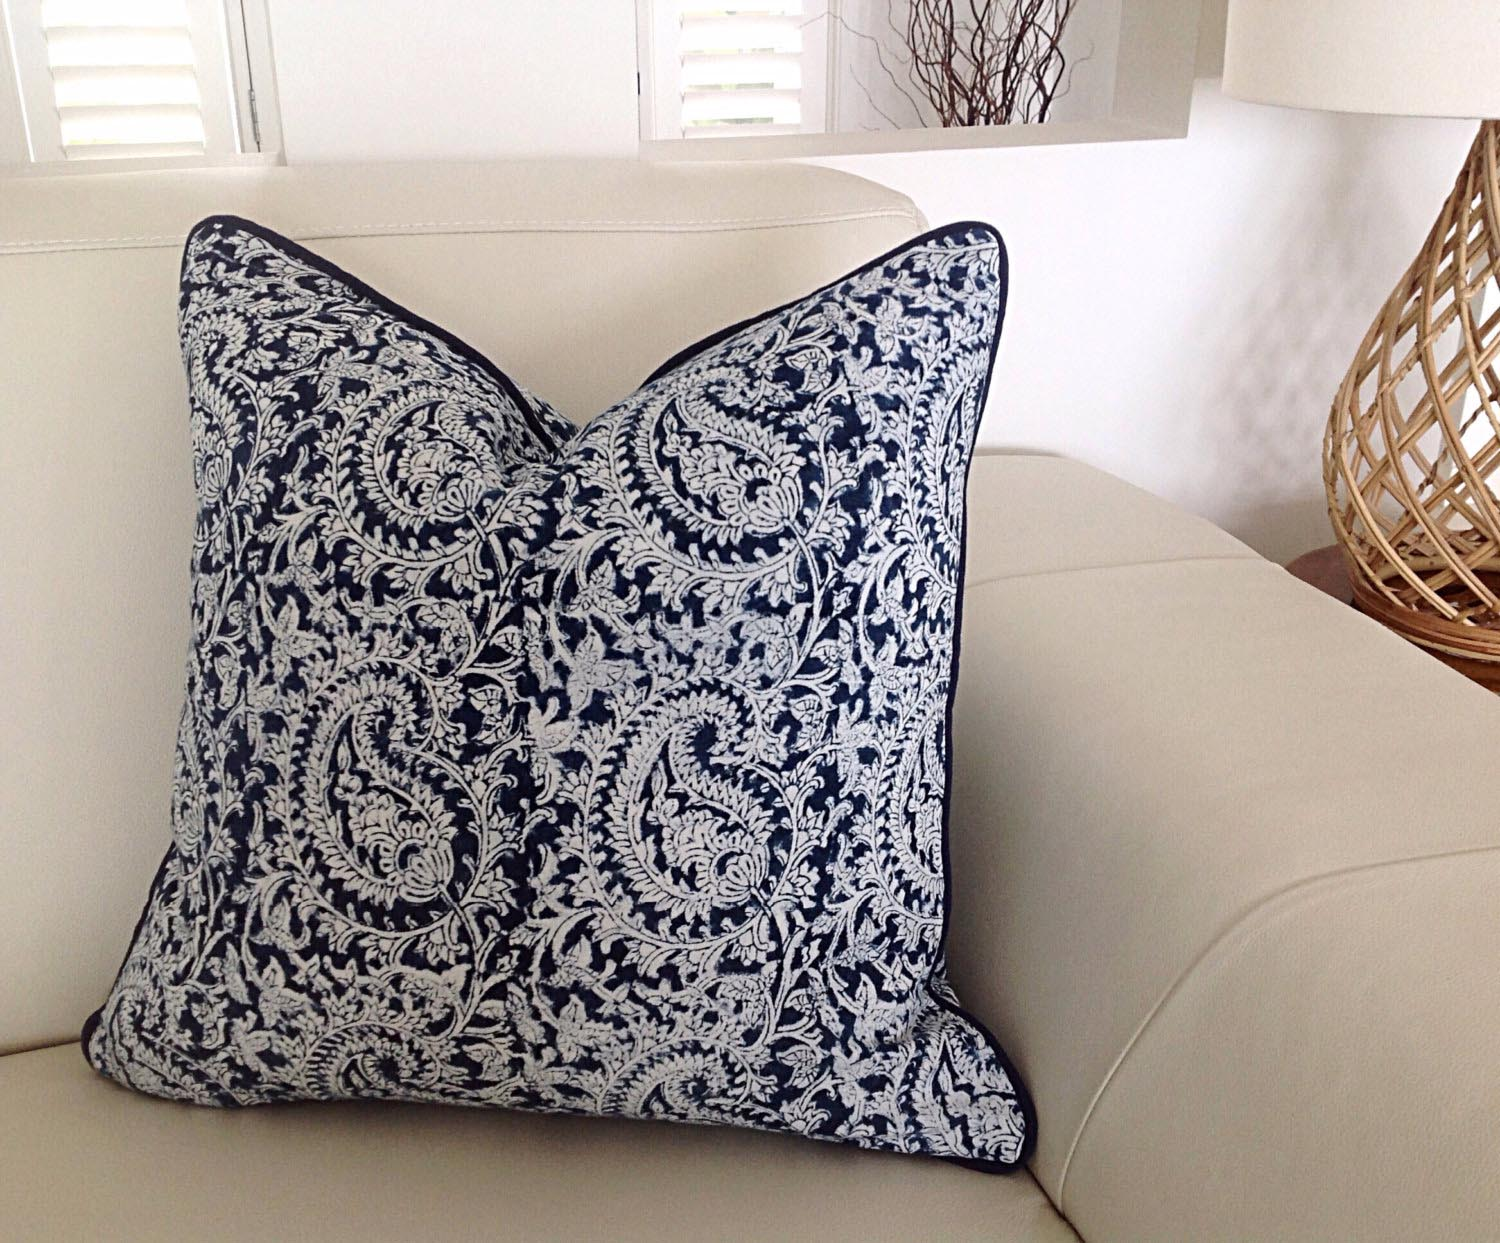 Blue throw pillows, bolsters, lumbar pillows, and breakfast pillows fit well in the living room space. For spaces such as the bedroom where the pillows will be used on the bed, a wide mix of sizes can be used.